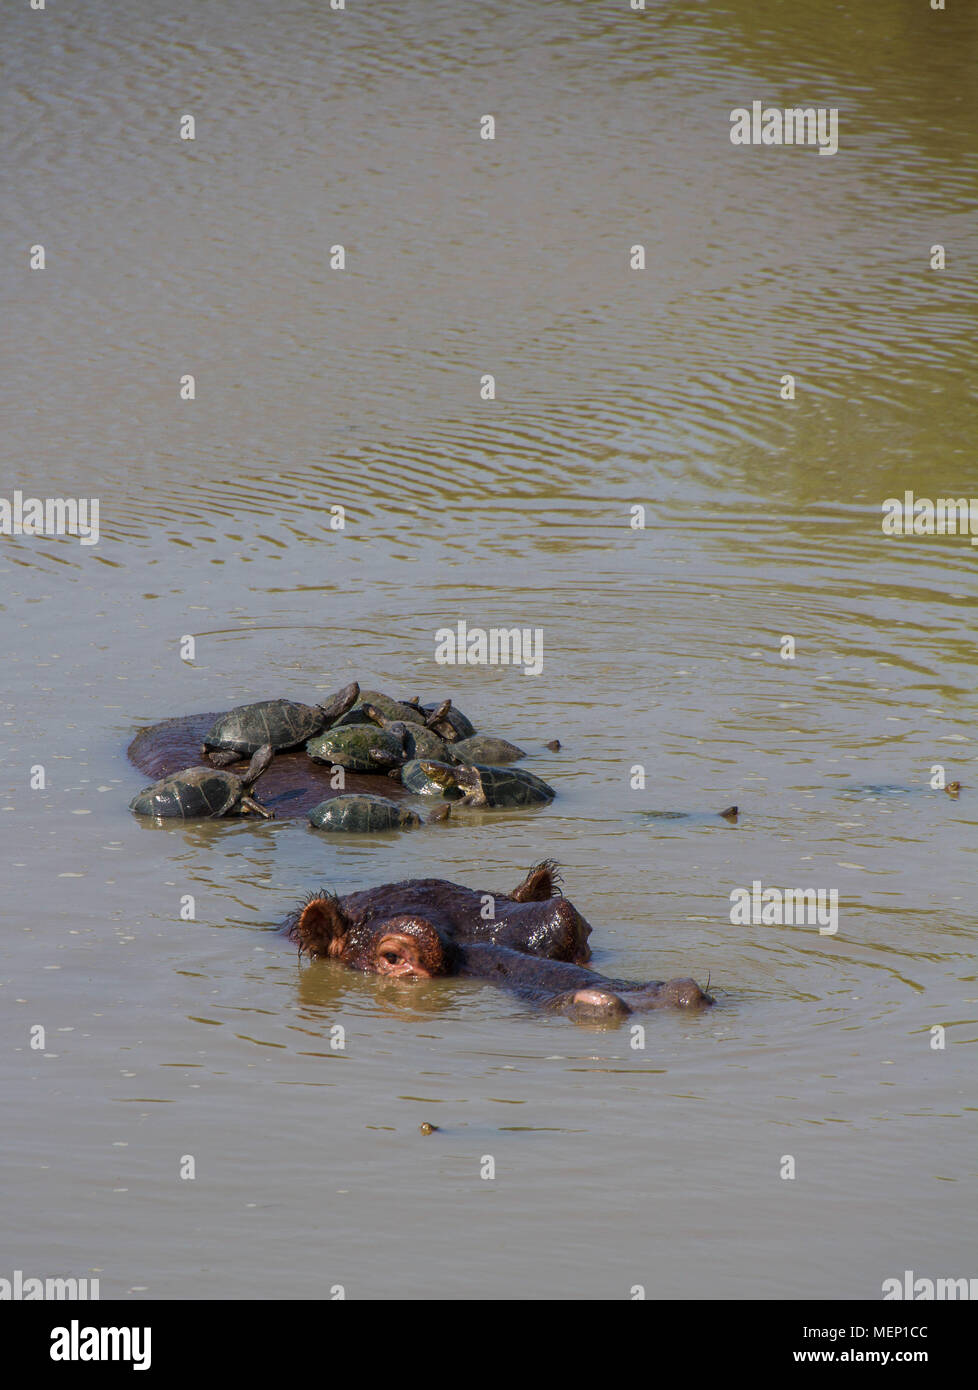 Terrapins catch a ride on the back of a large hippopotamus in the African wilderness image with copy space - Stock Image